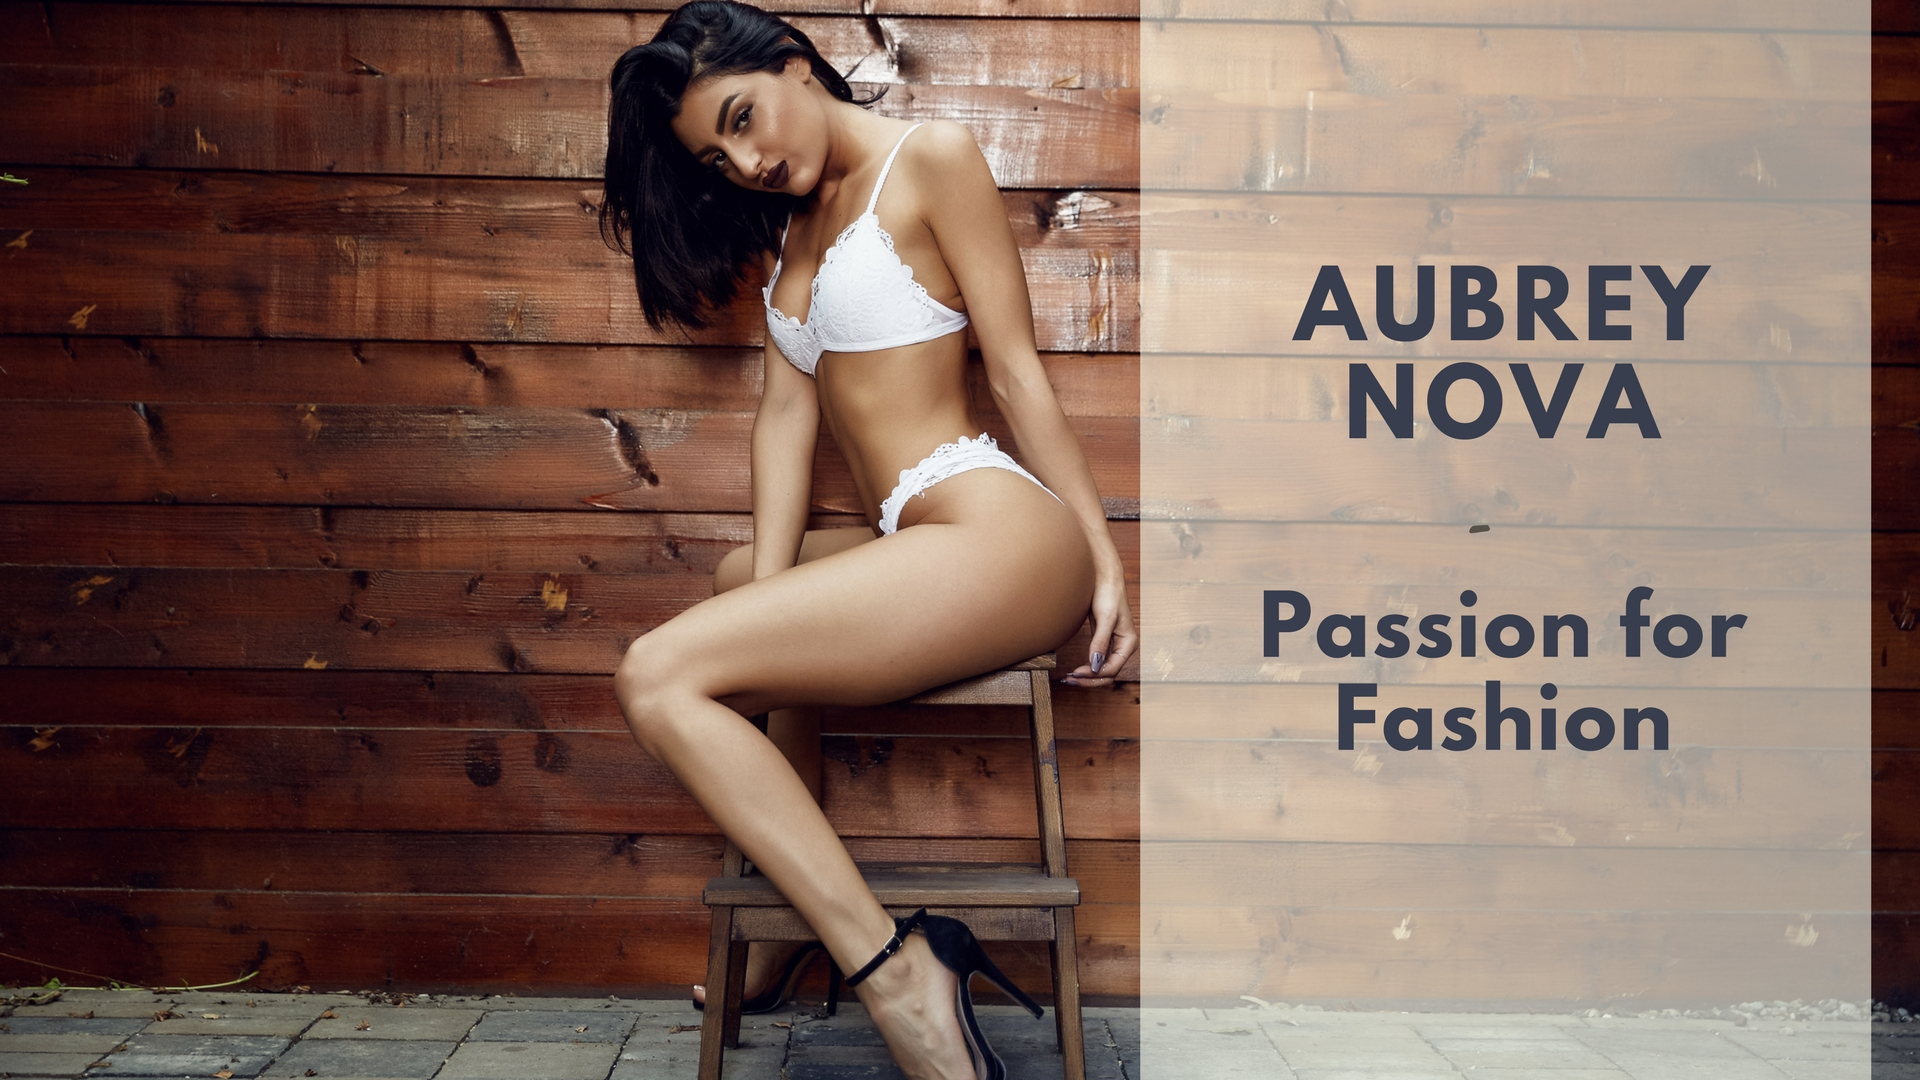 Aubrey Nova - Passion for Fashion